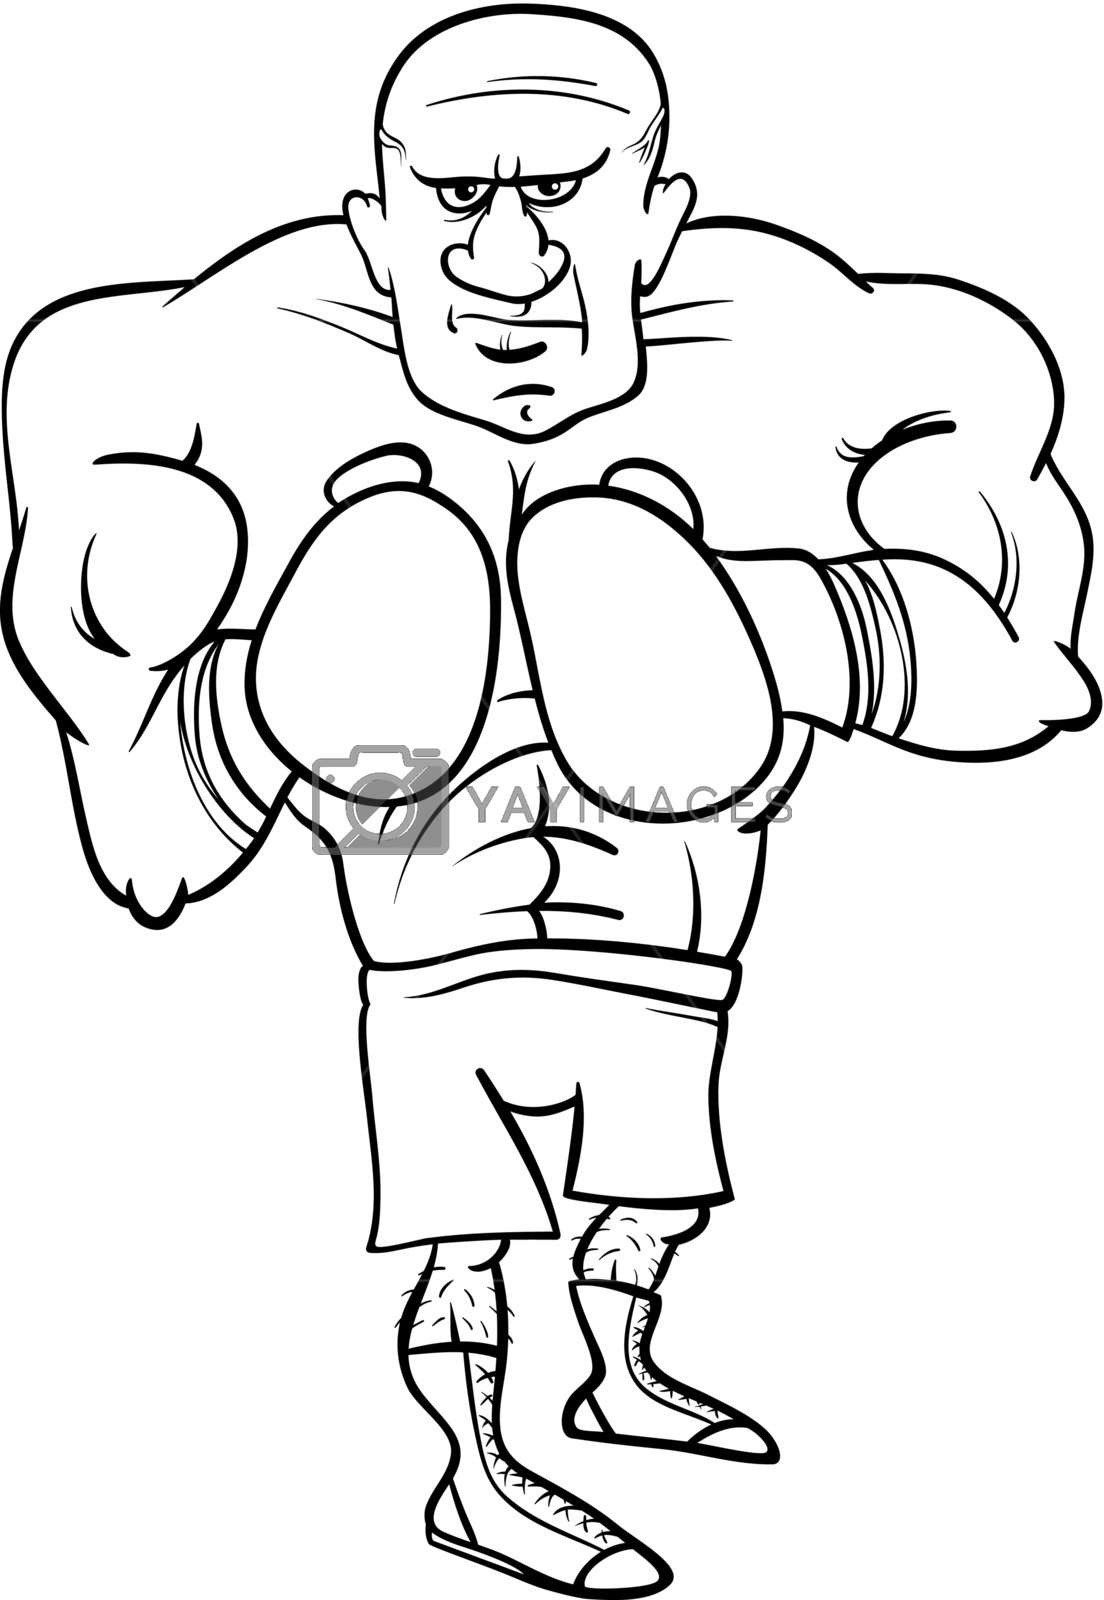 Boxing Gloves Coloring Pages Boxer Sportsman Cartoon Coloring Page Royalty Free Stock Fathers Day Coloring Page Cartoon Coloring Pages Cat Coloring Book